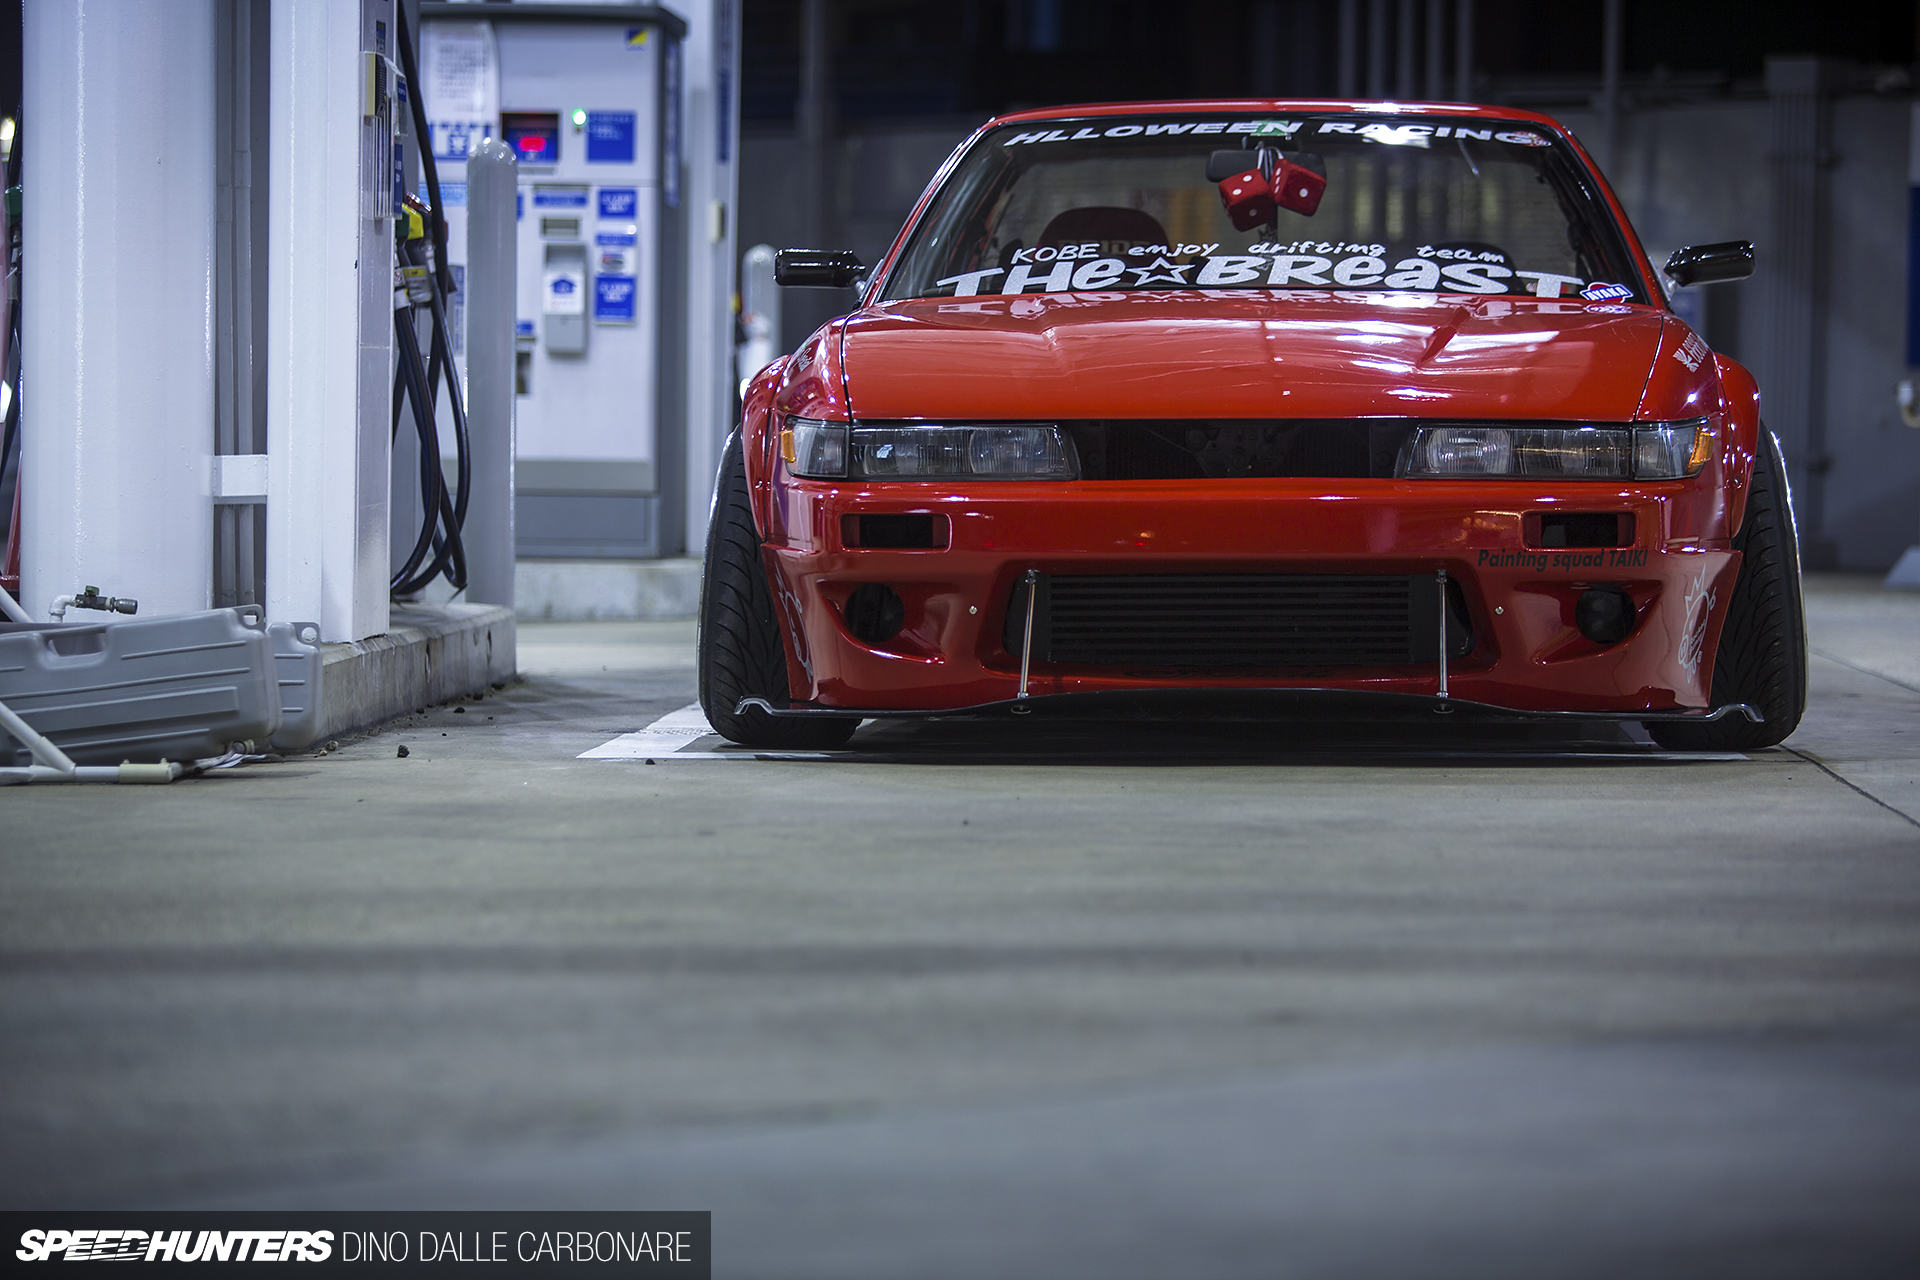 this is a drift car halloween racing s13 speedhunters. Black Bedroom Furniture Sets. Home Design Ideas